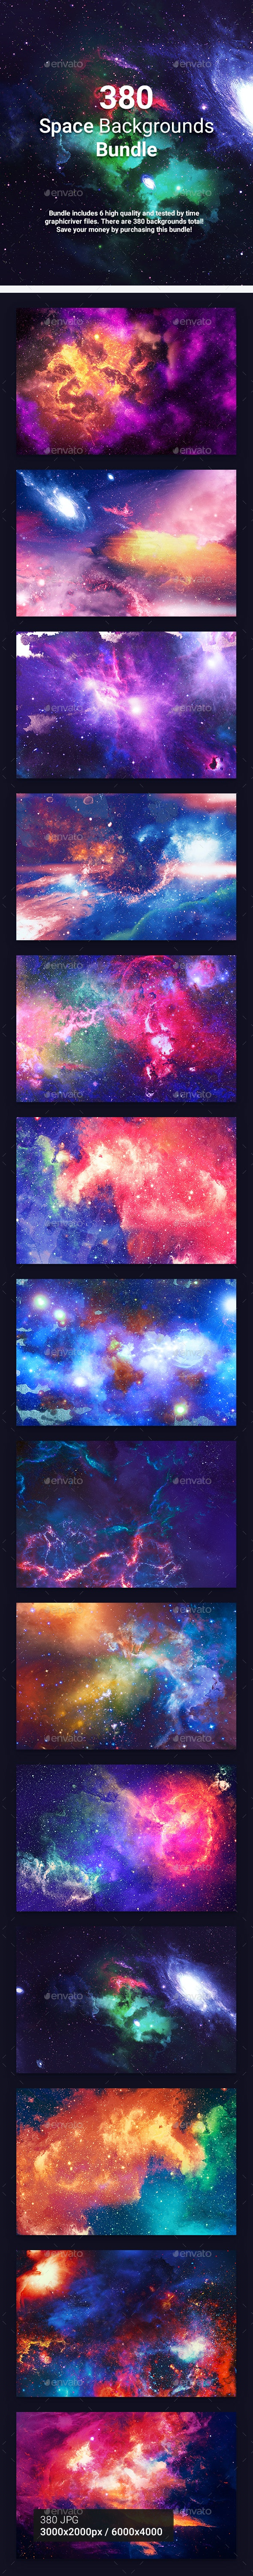 380 Space Backgrounds Bundle - Abstract Backgrounds